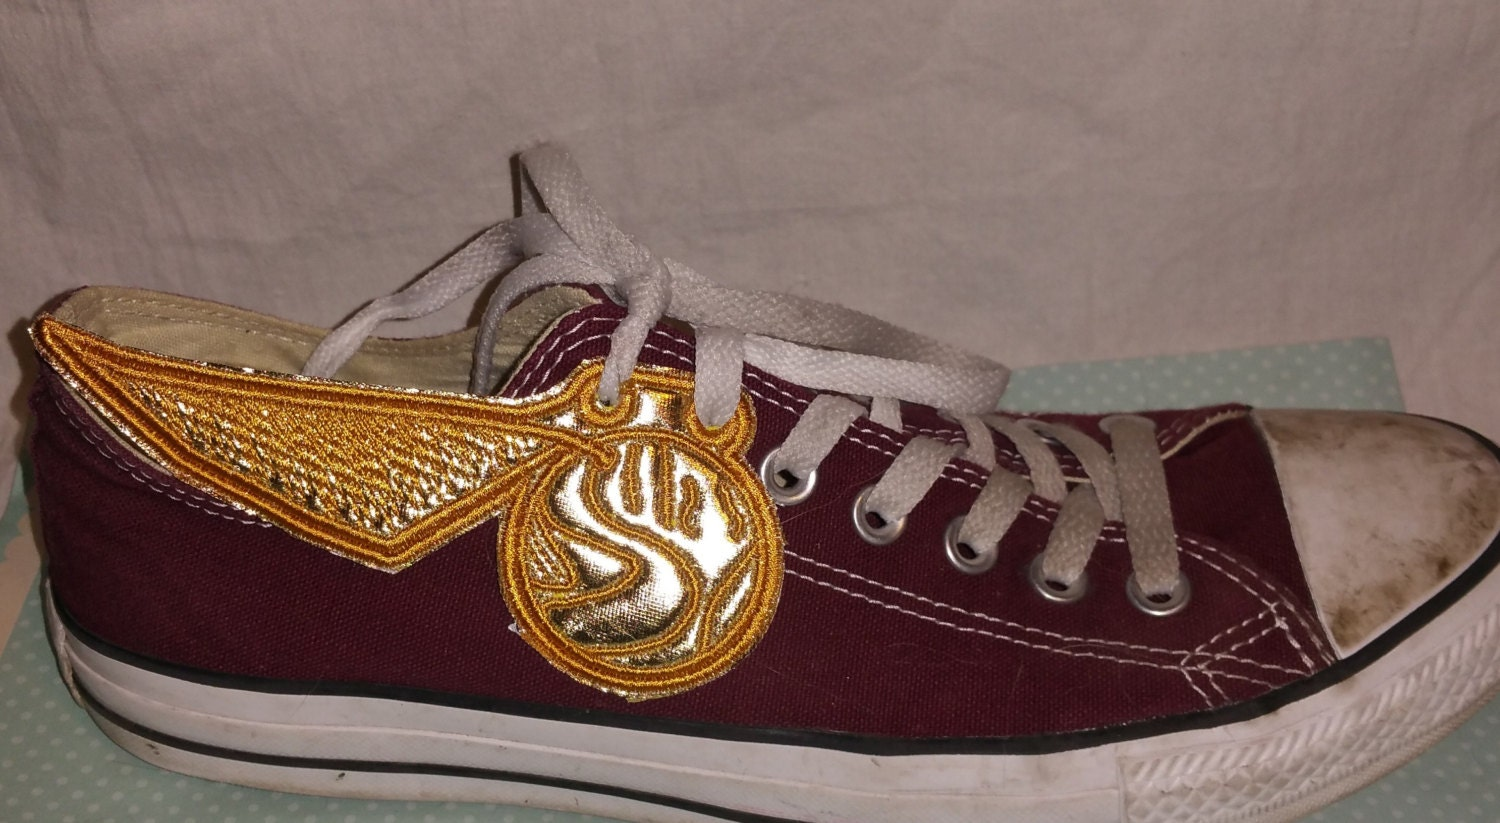 Golden snitch shoe wings in the hoop machine embroidery design